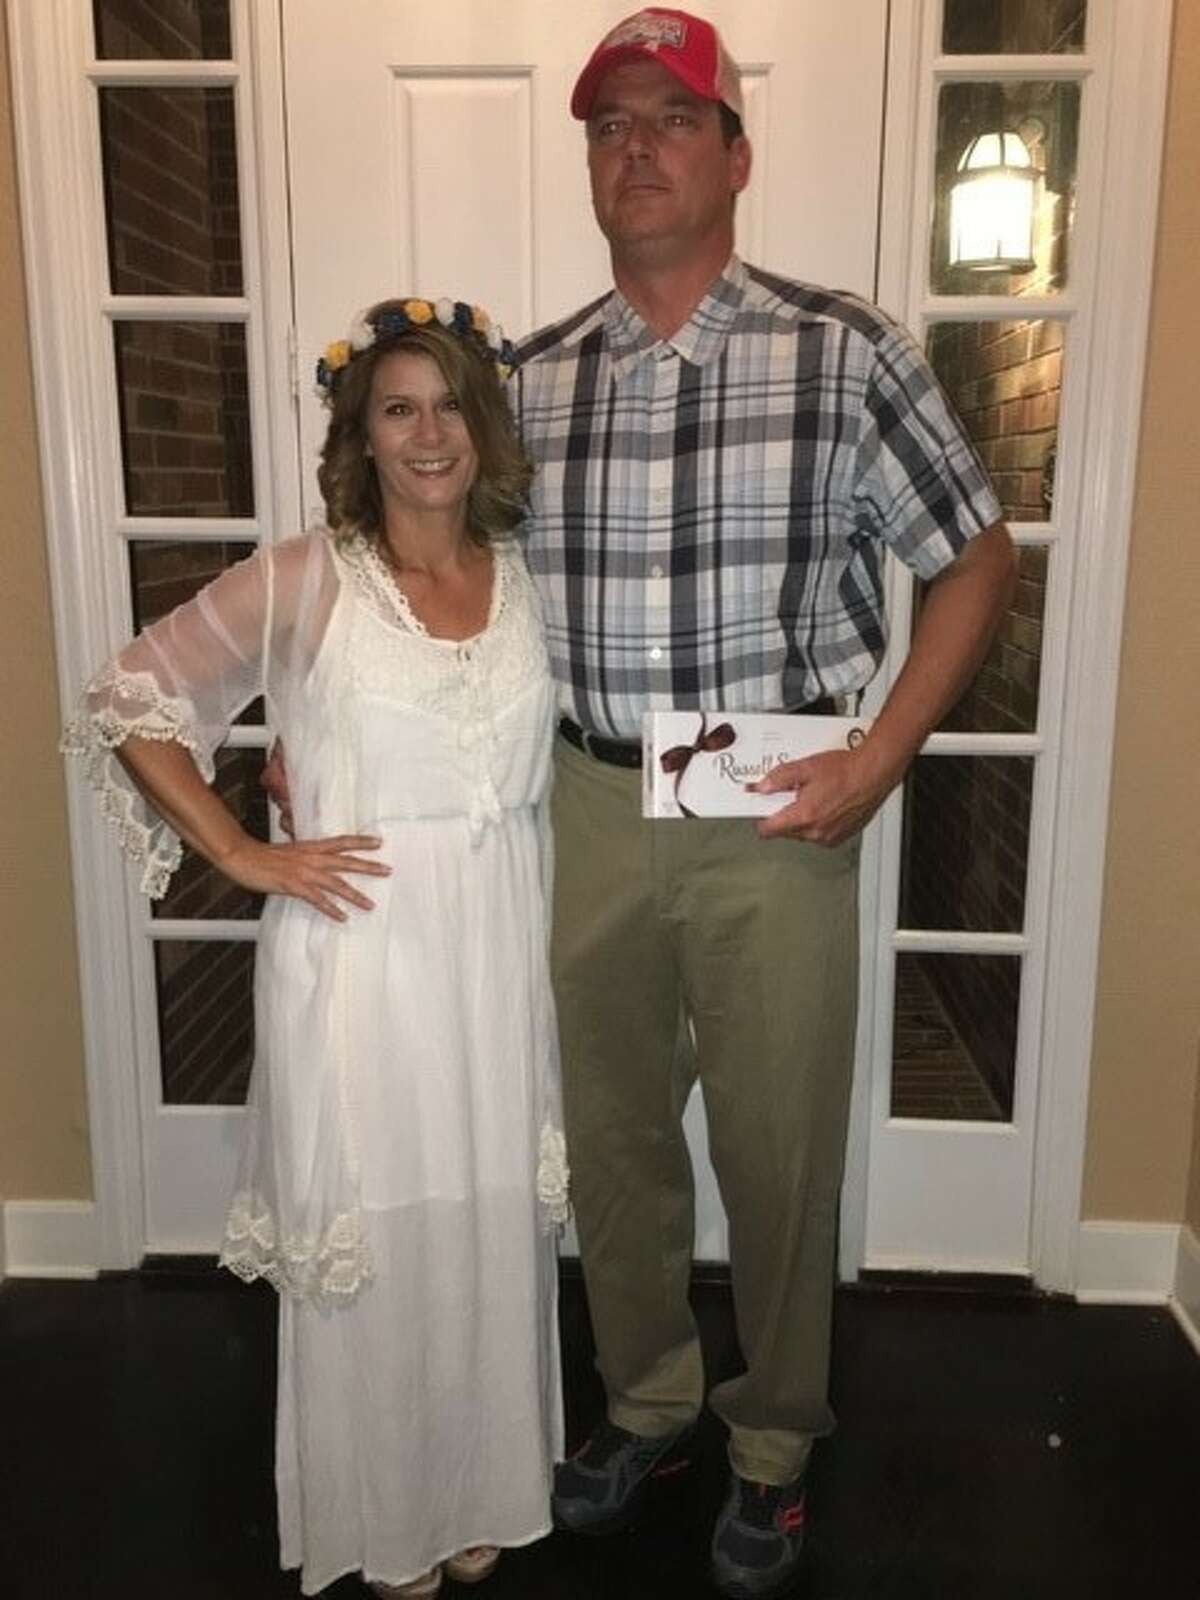 Kens 5 meteorologist Bill Taylor and his wife Jamie as Forrest Gump and Jenny